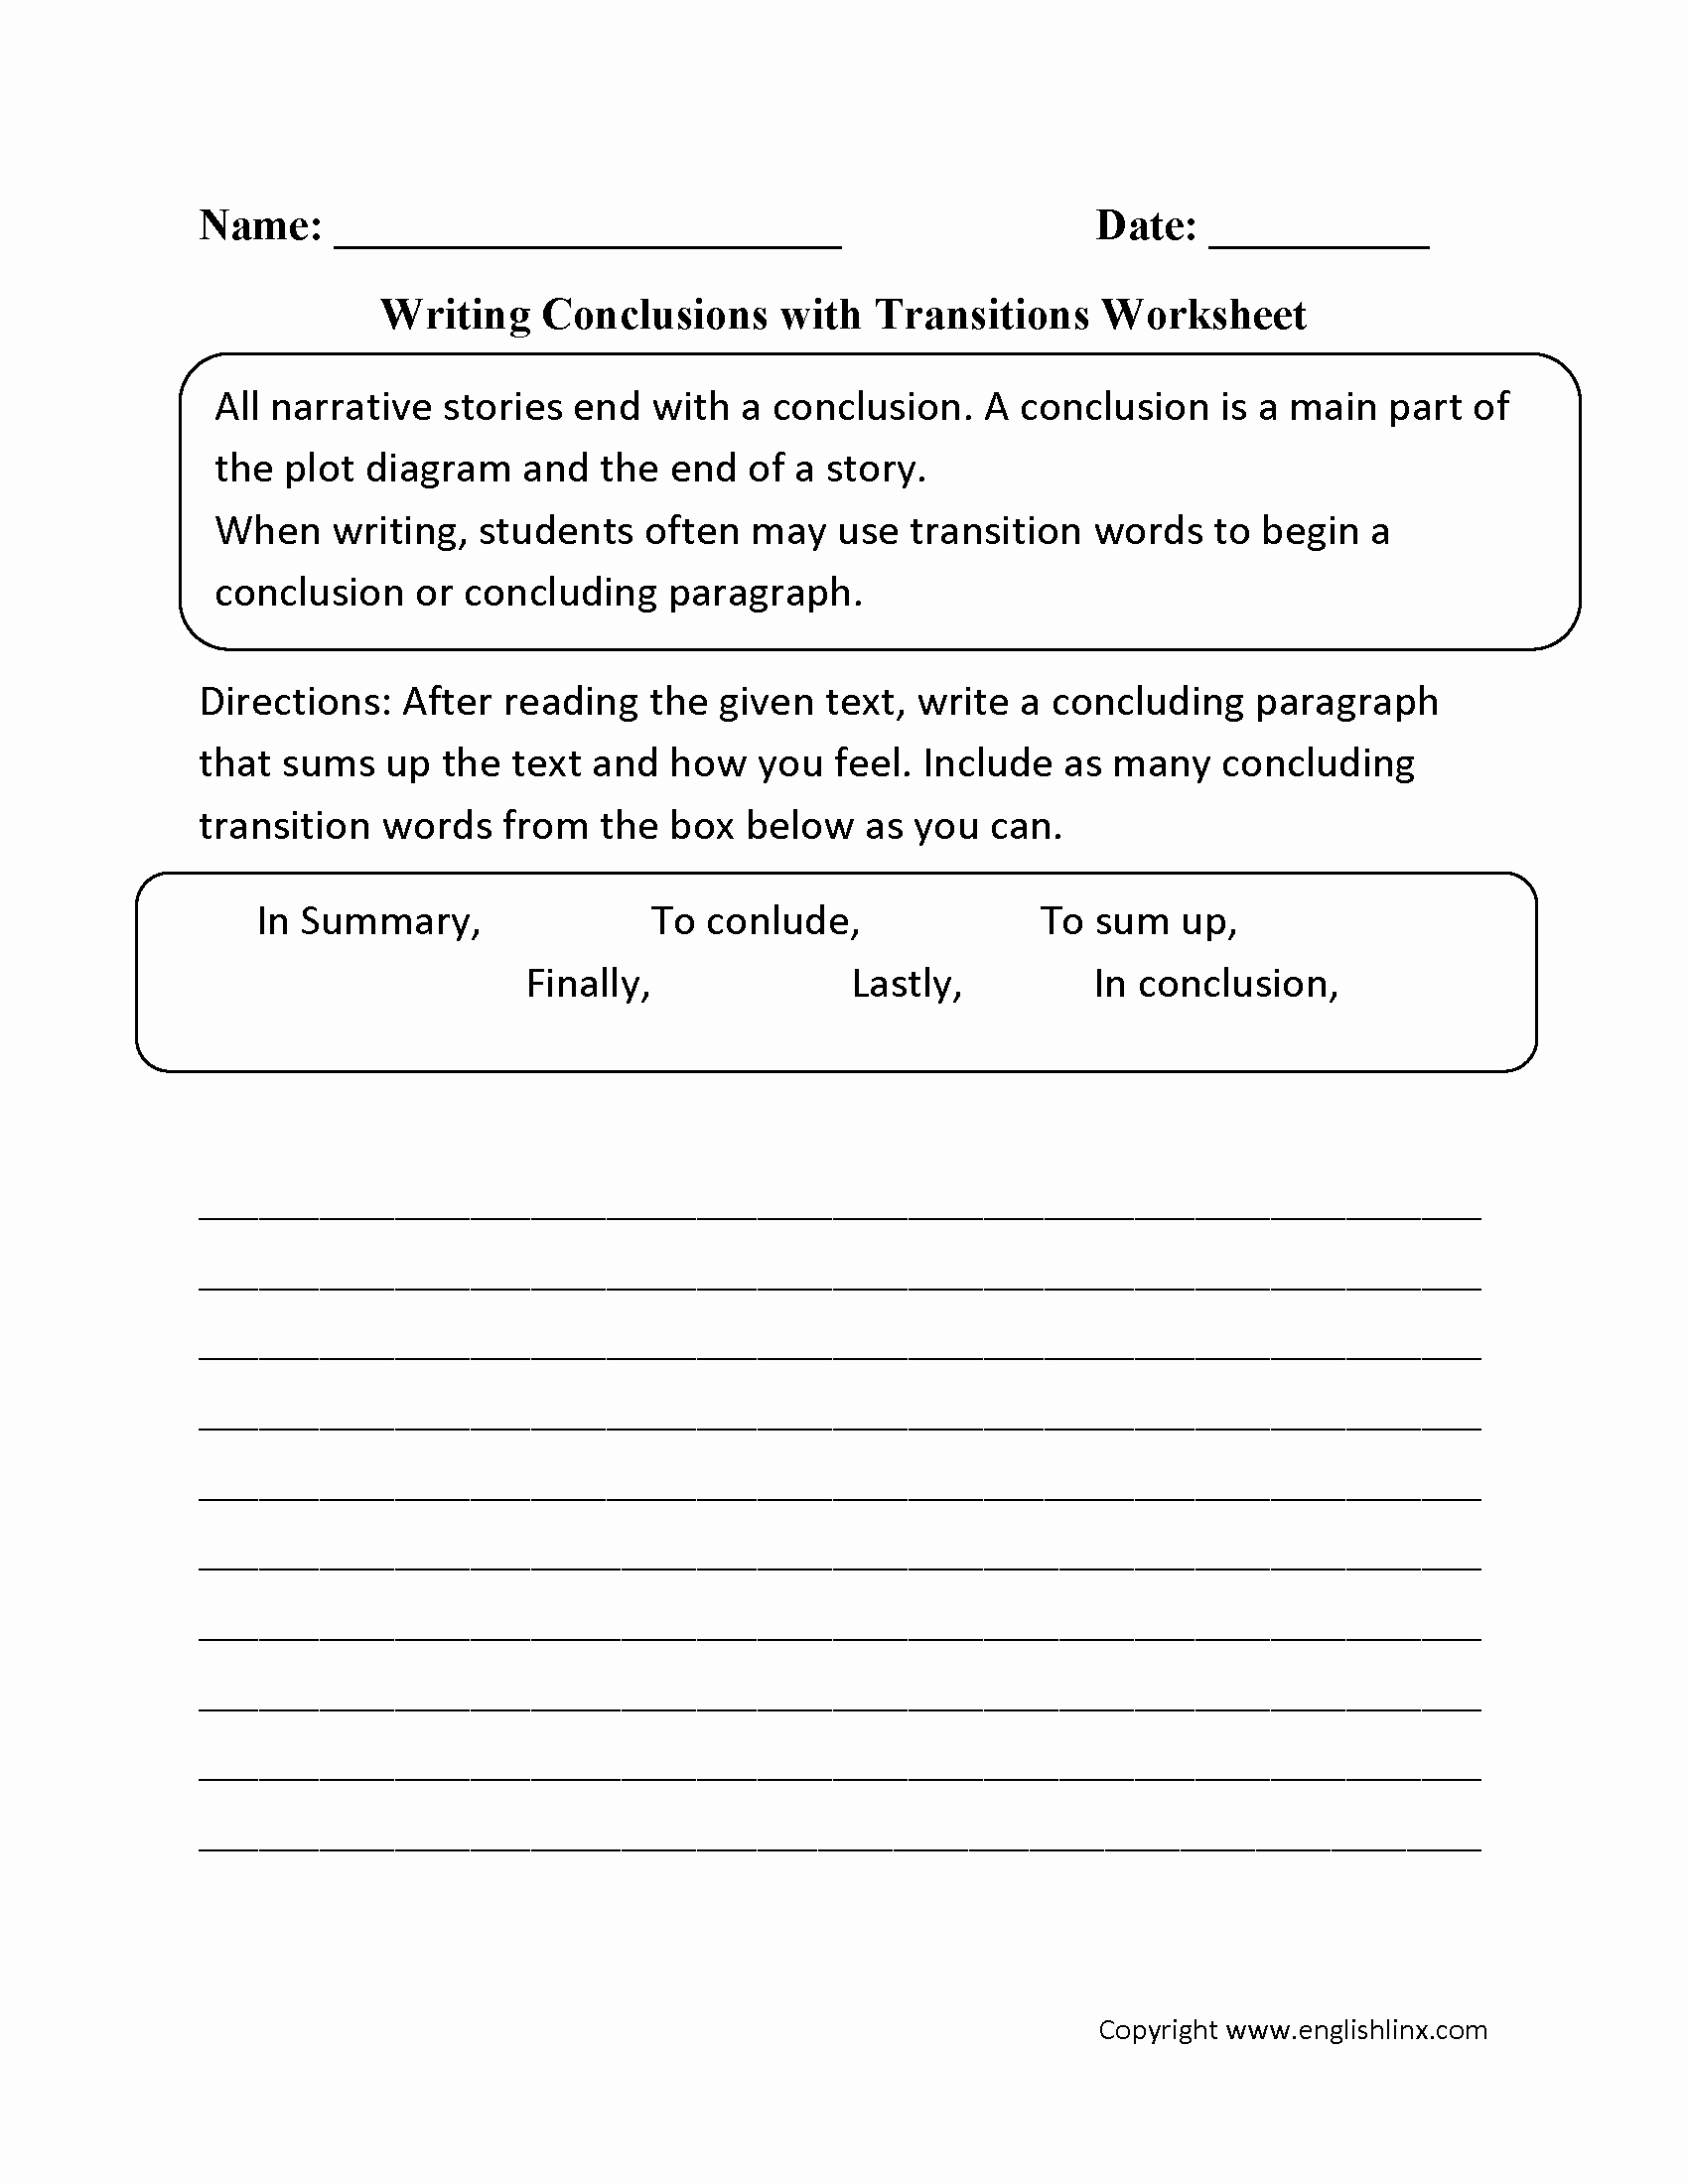 Making Conclusions Geometry Worksheet Answers Awesome Englishlinx